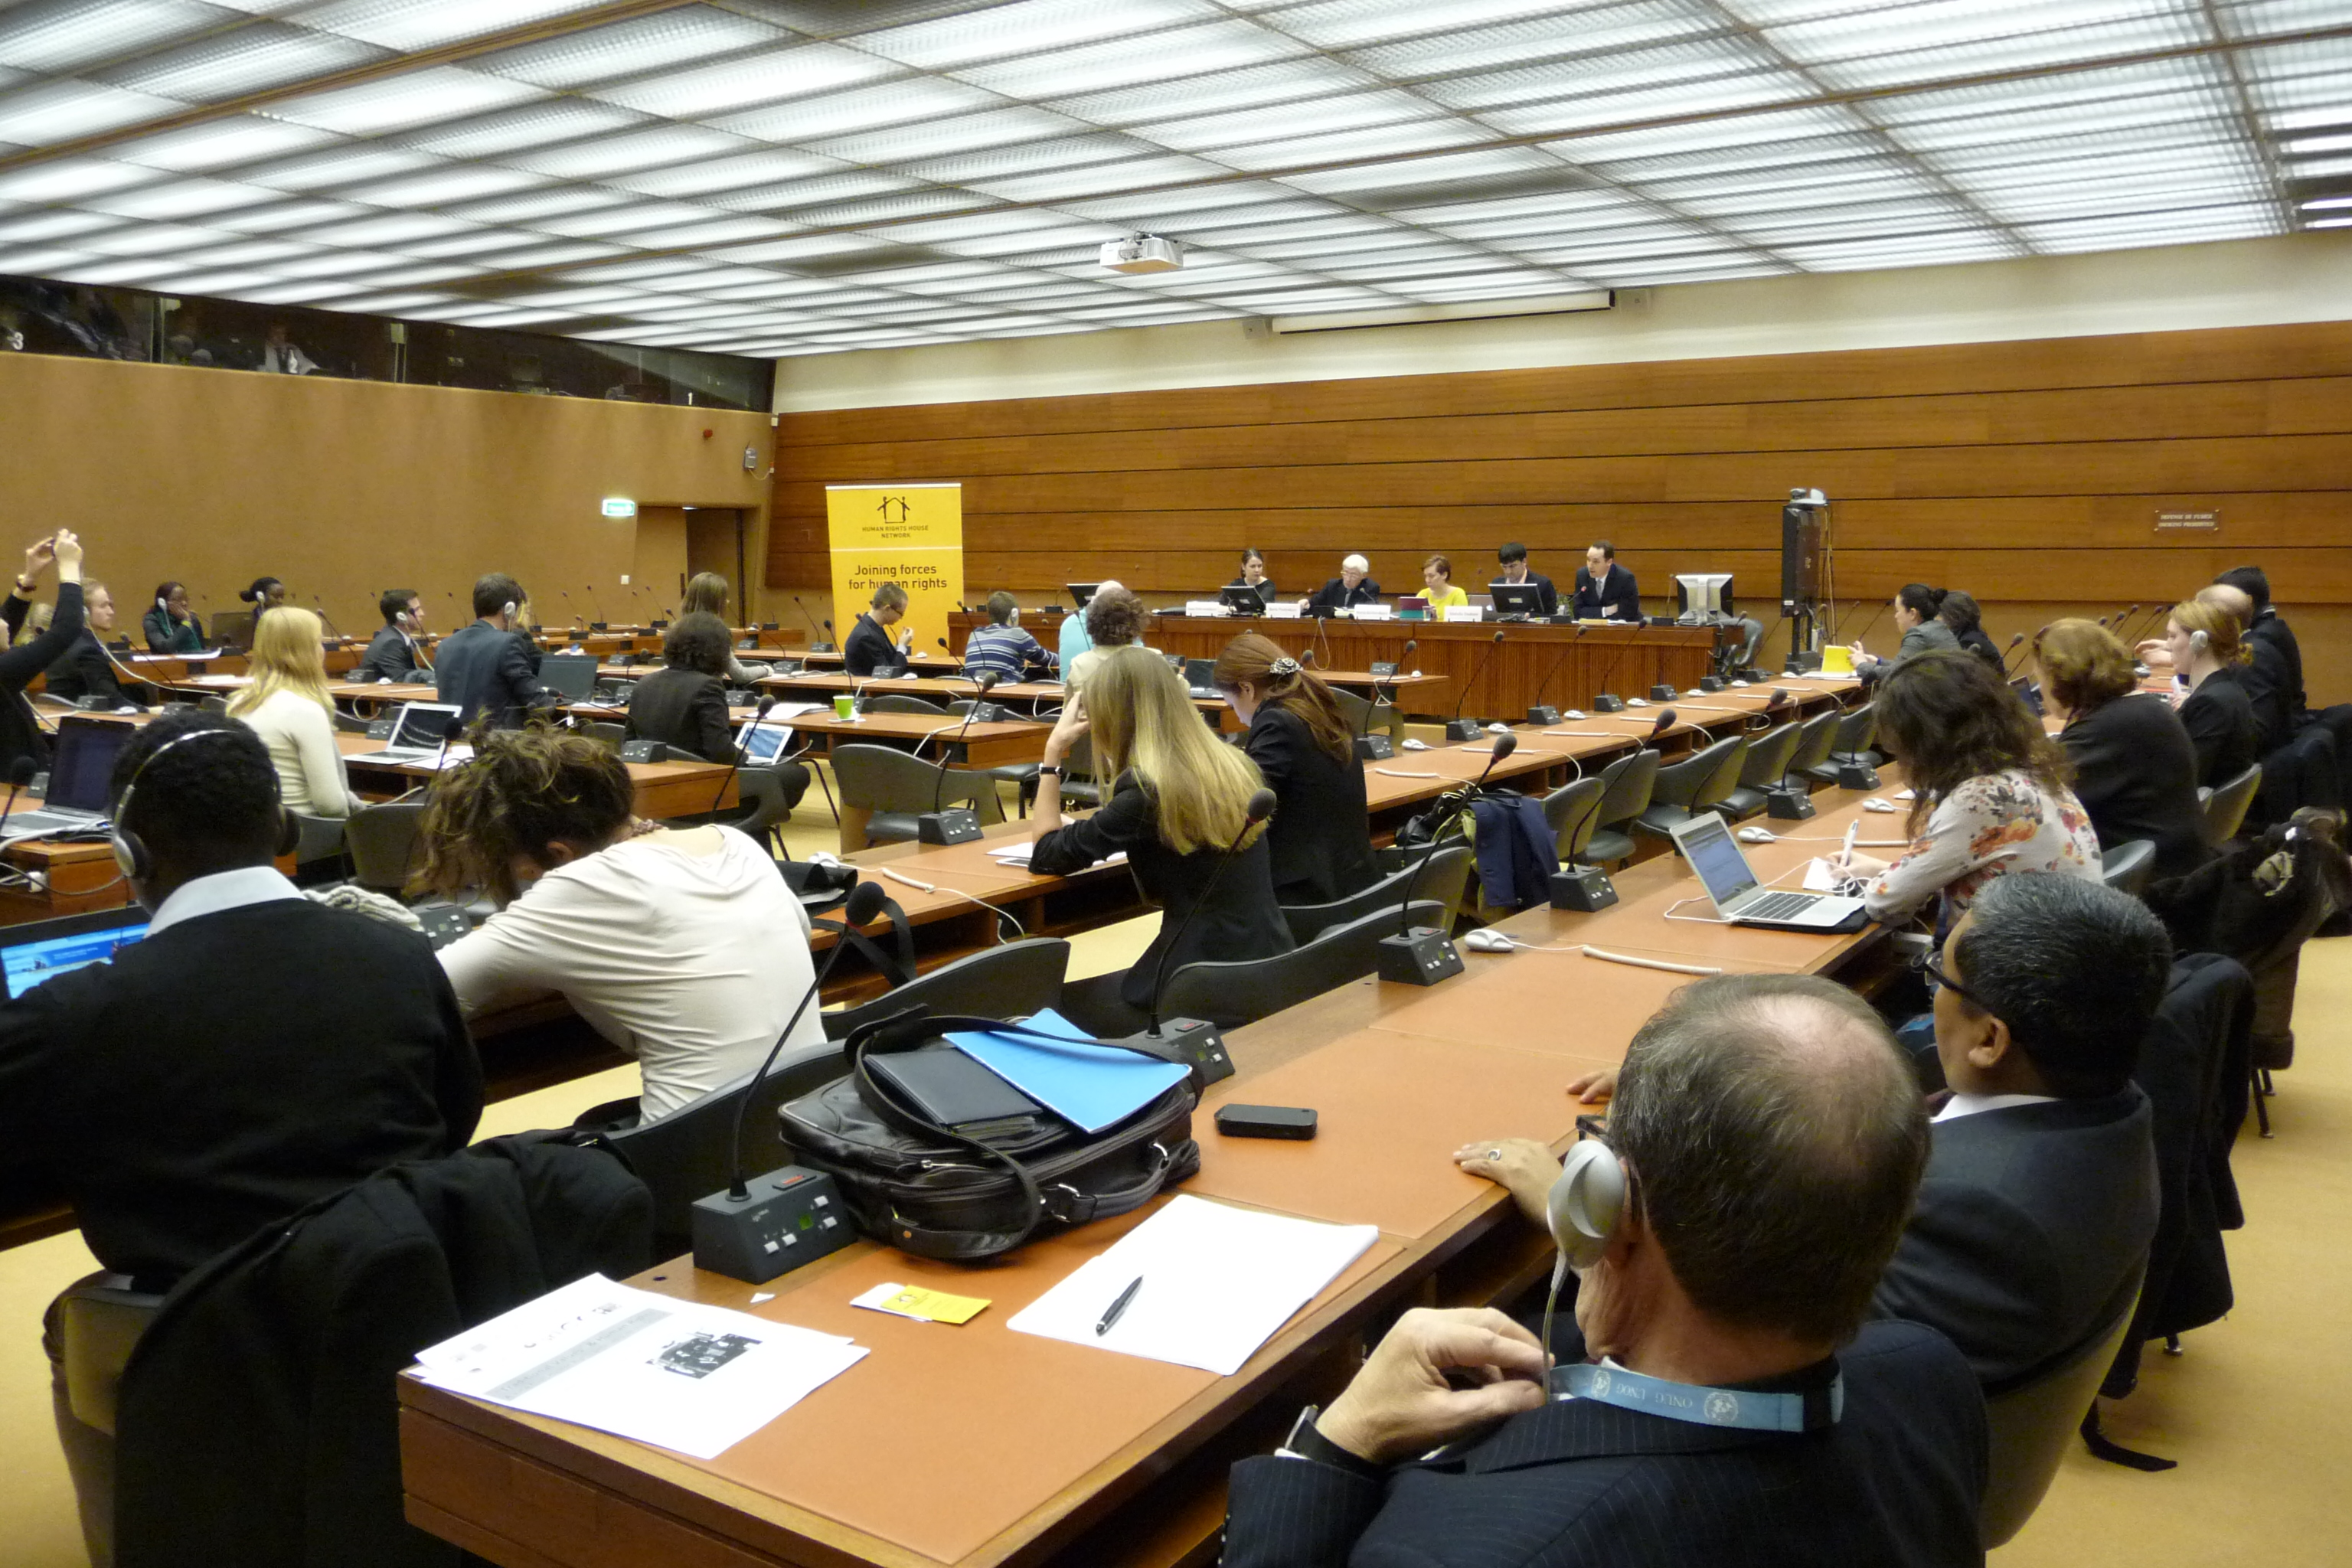 Geneva side event